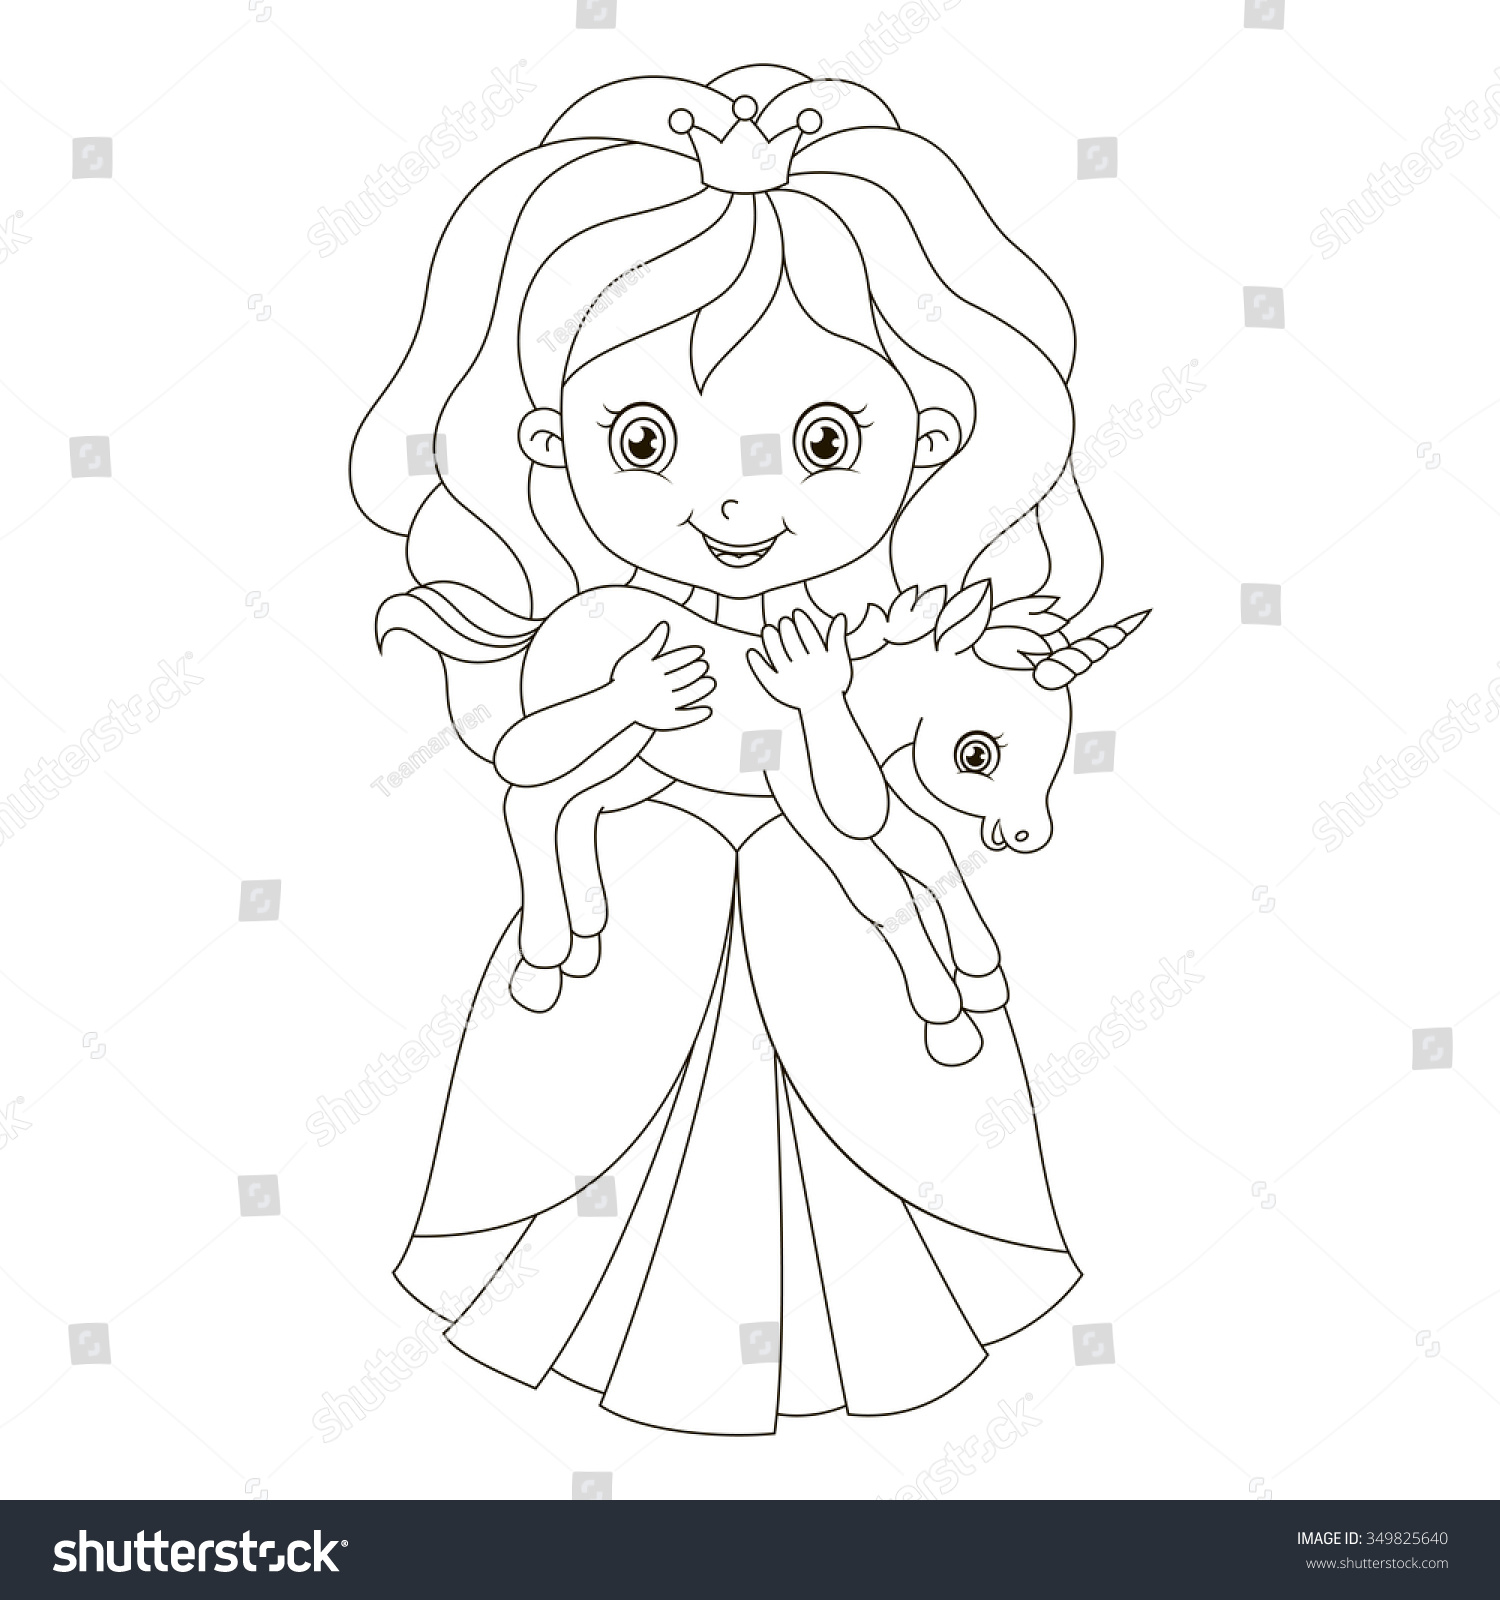 Charlie the unicorn coloring pages - Illustration Beautiful Princess Baby Unicorn Coloring Stock